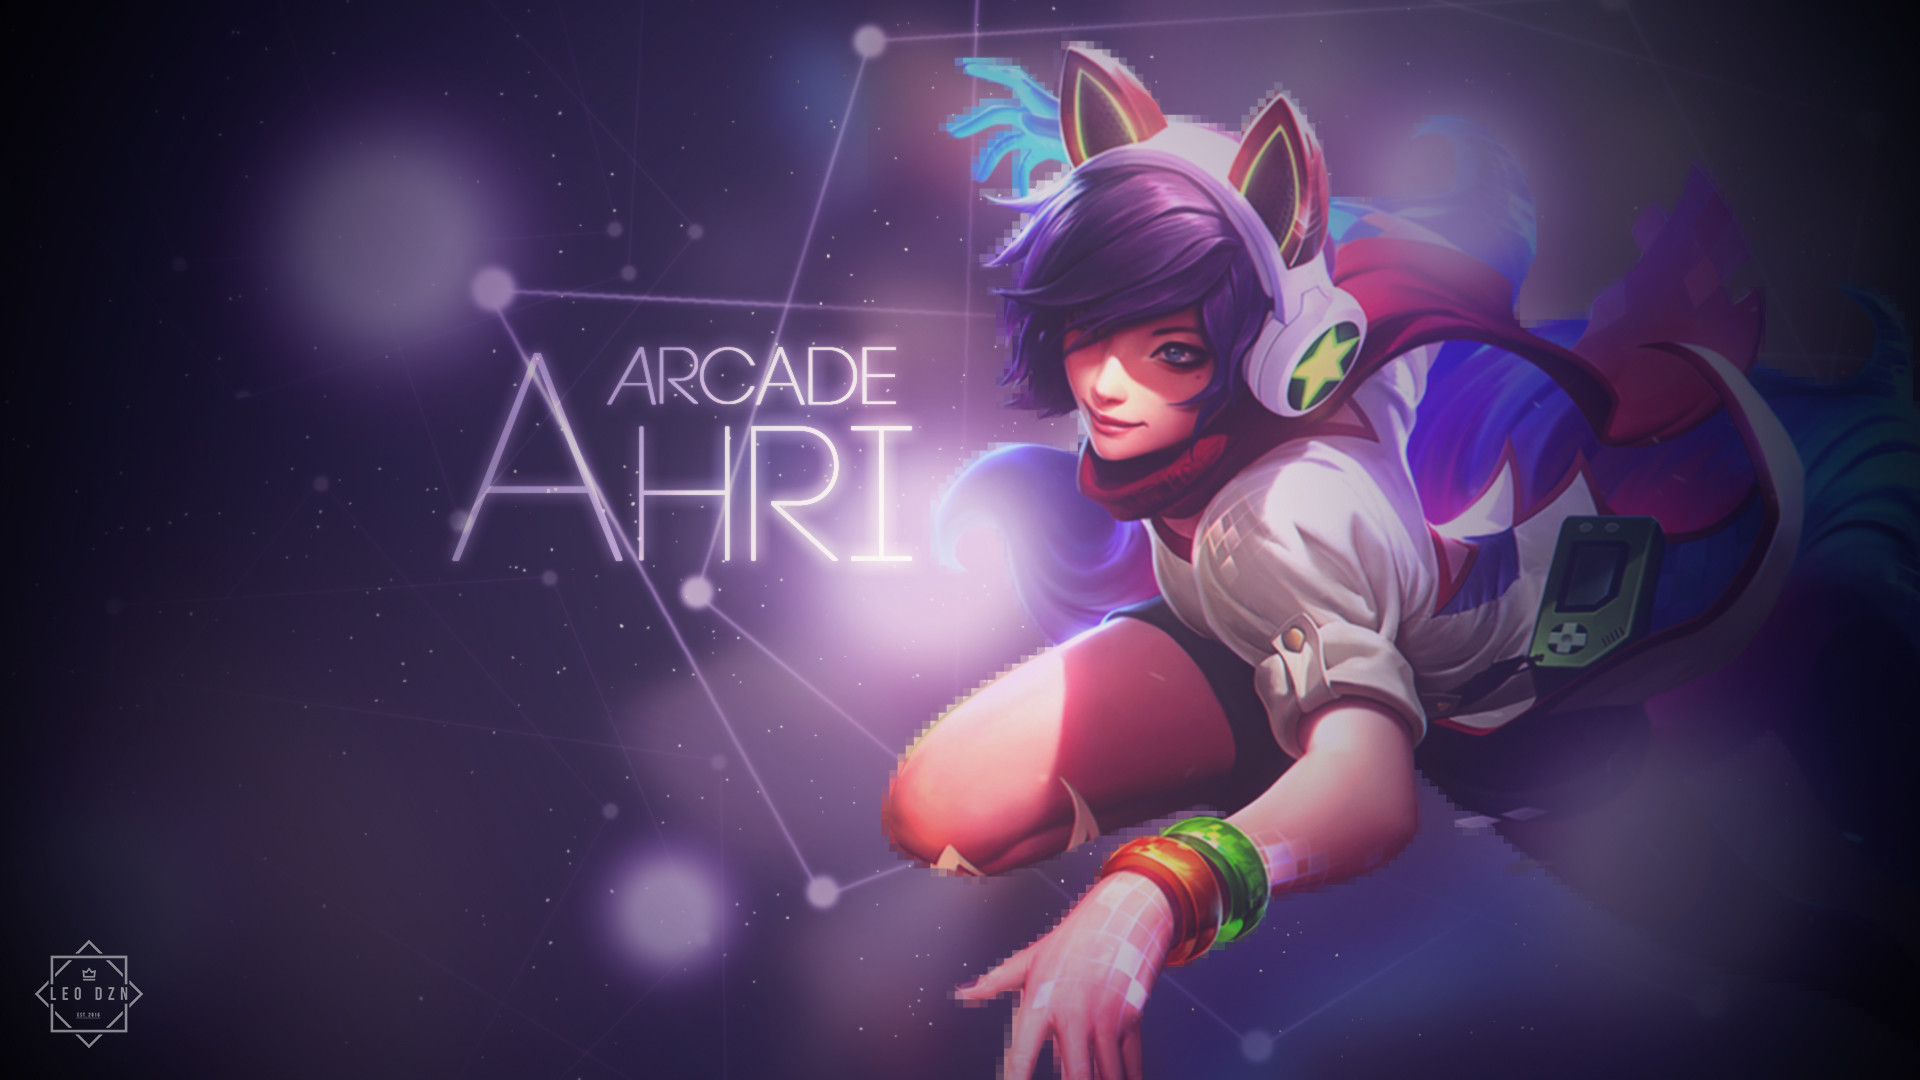 1920x1080 ... Arcade Ahri Wallpaper/2 by HfxKenji